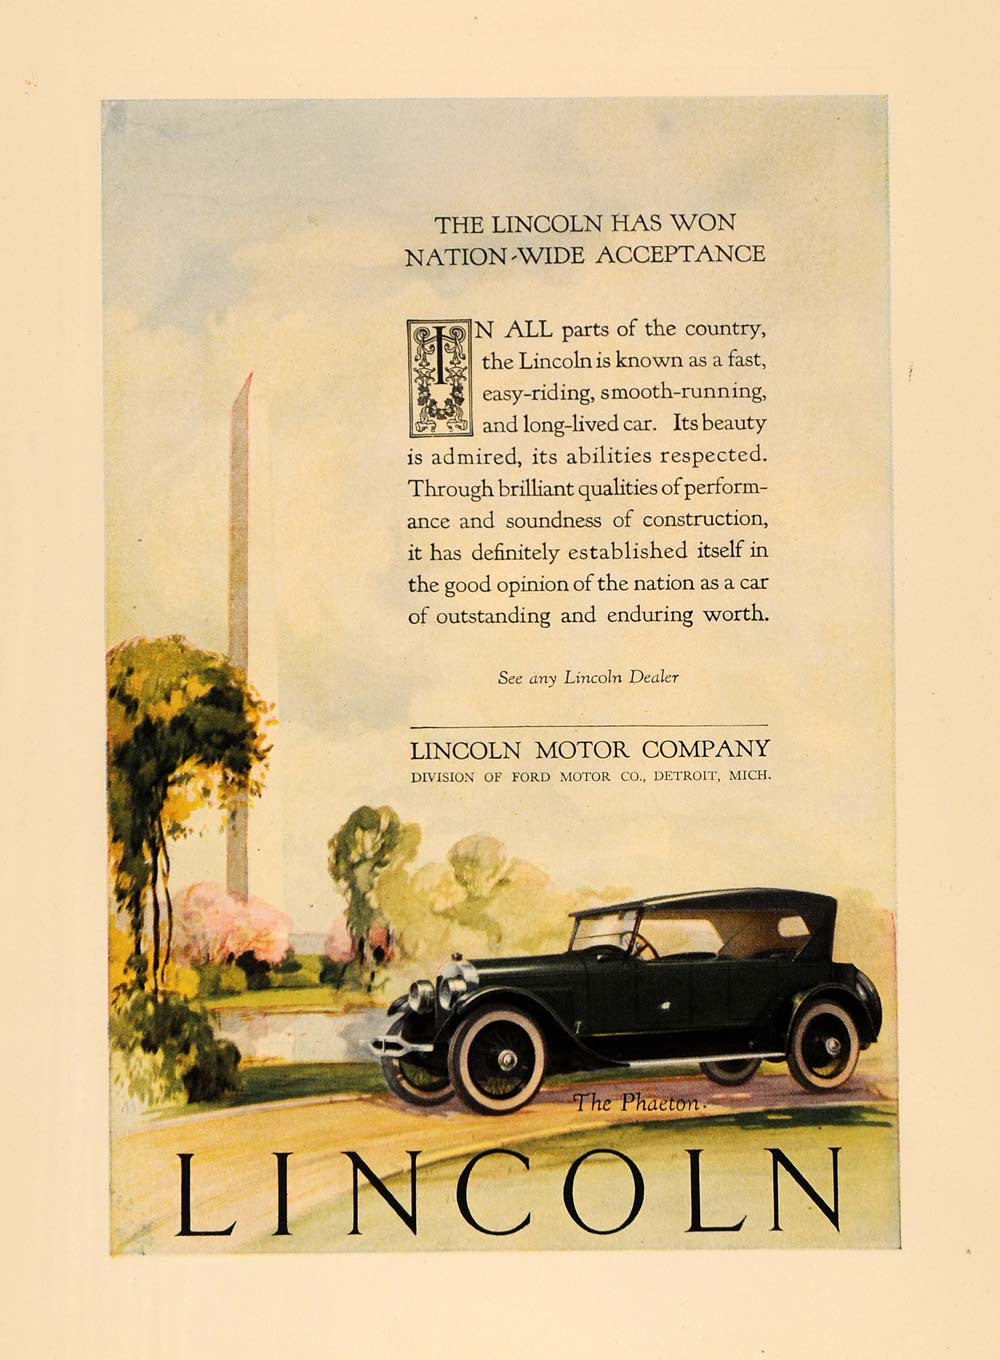 1924 Ad Lincoln Motor Automobile Phaeton Car Ford - ORIGINAL ADVERTISING WW3